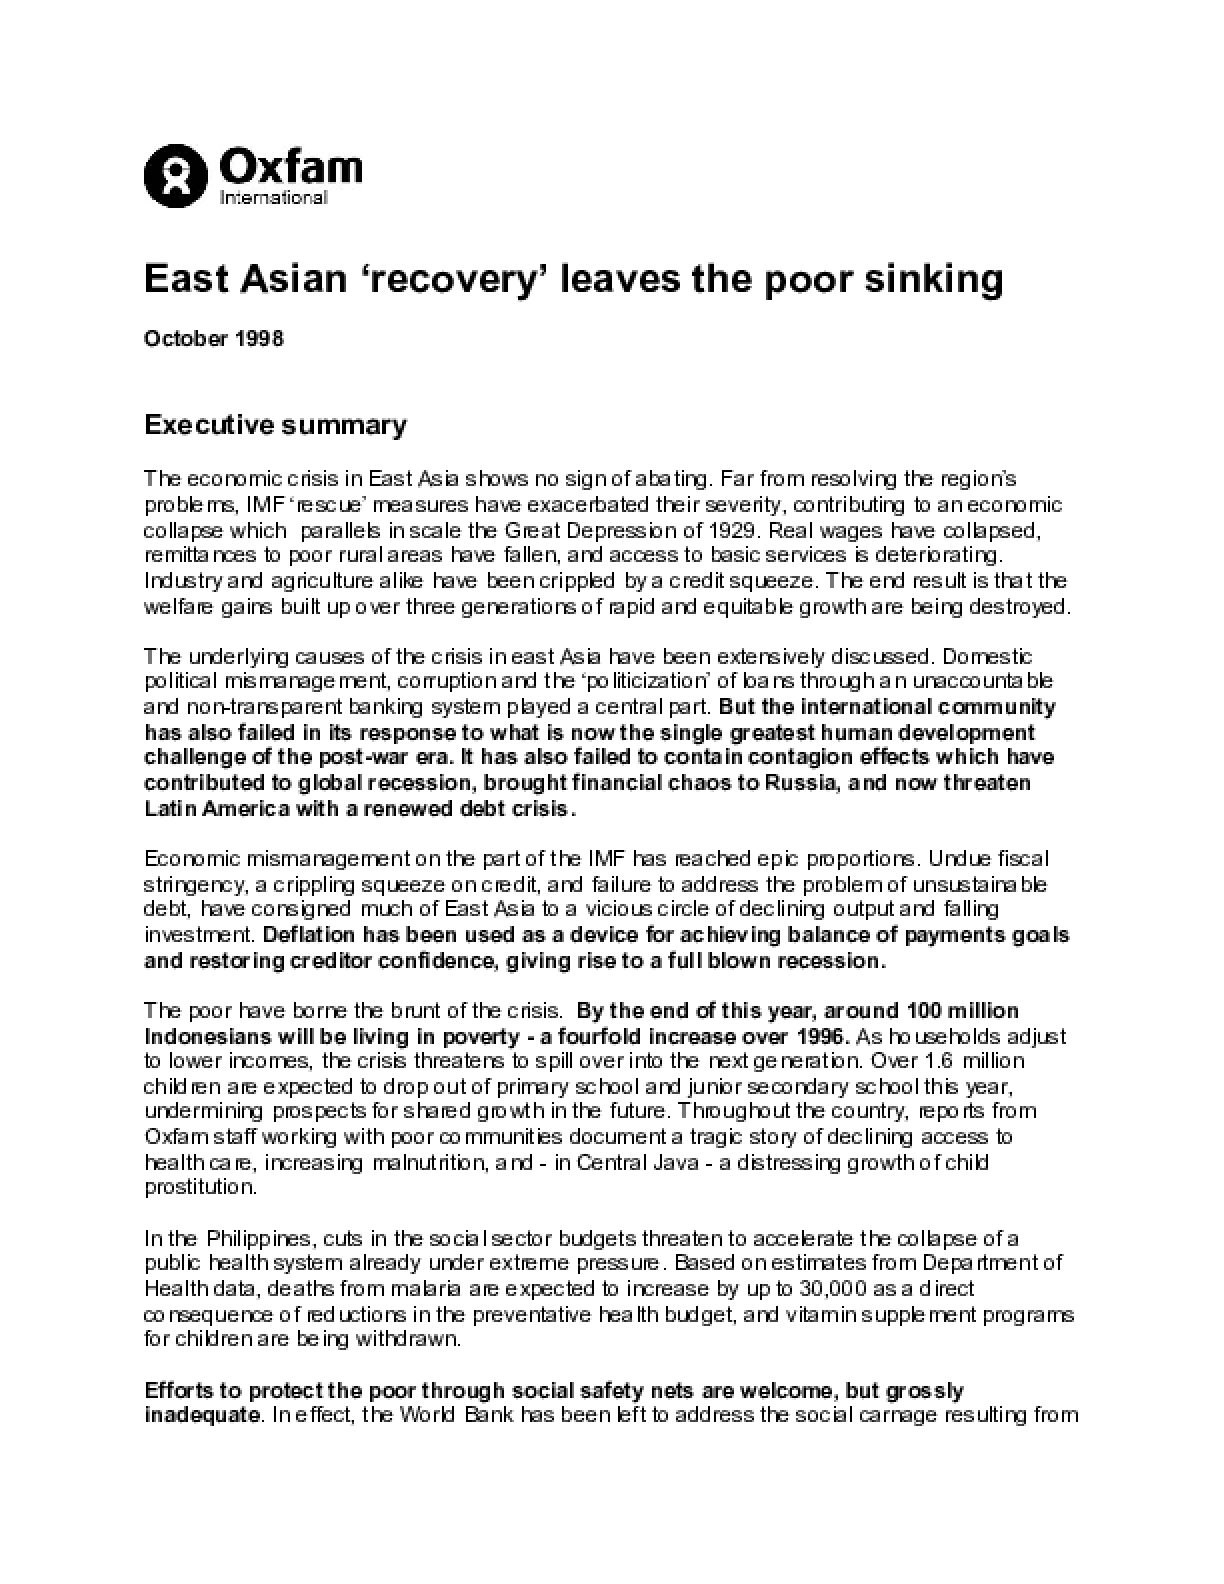 East Asian 'Recovery' Leaves the Poor Sinking